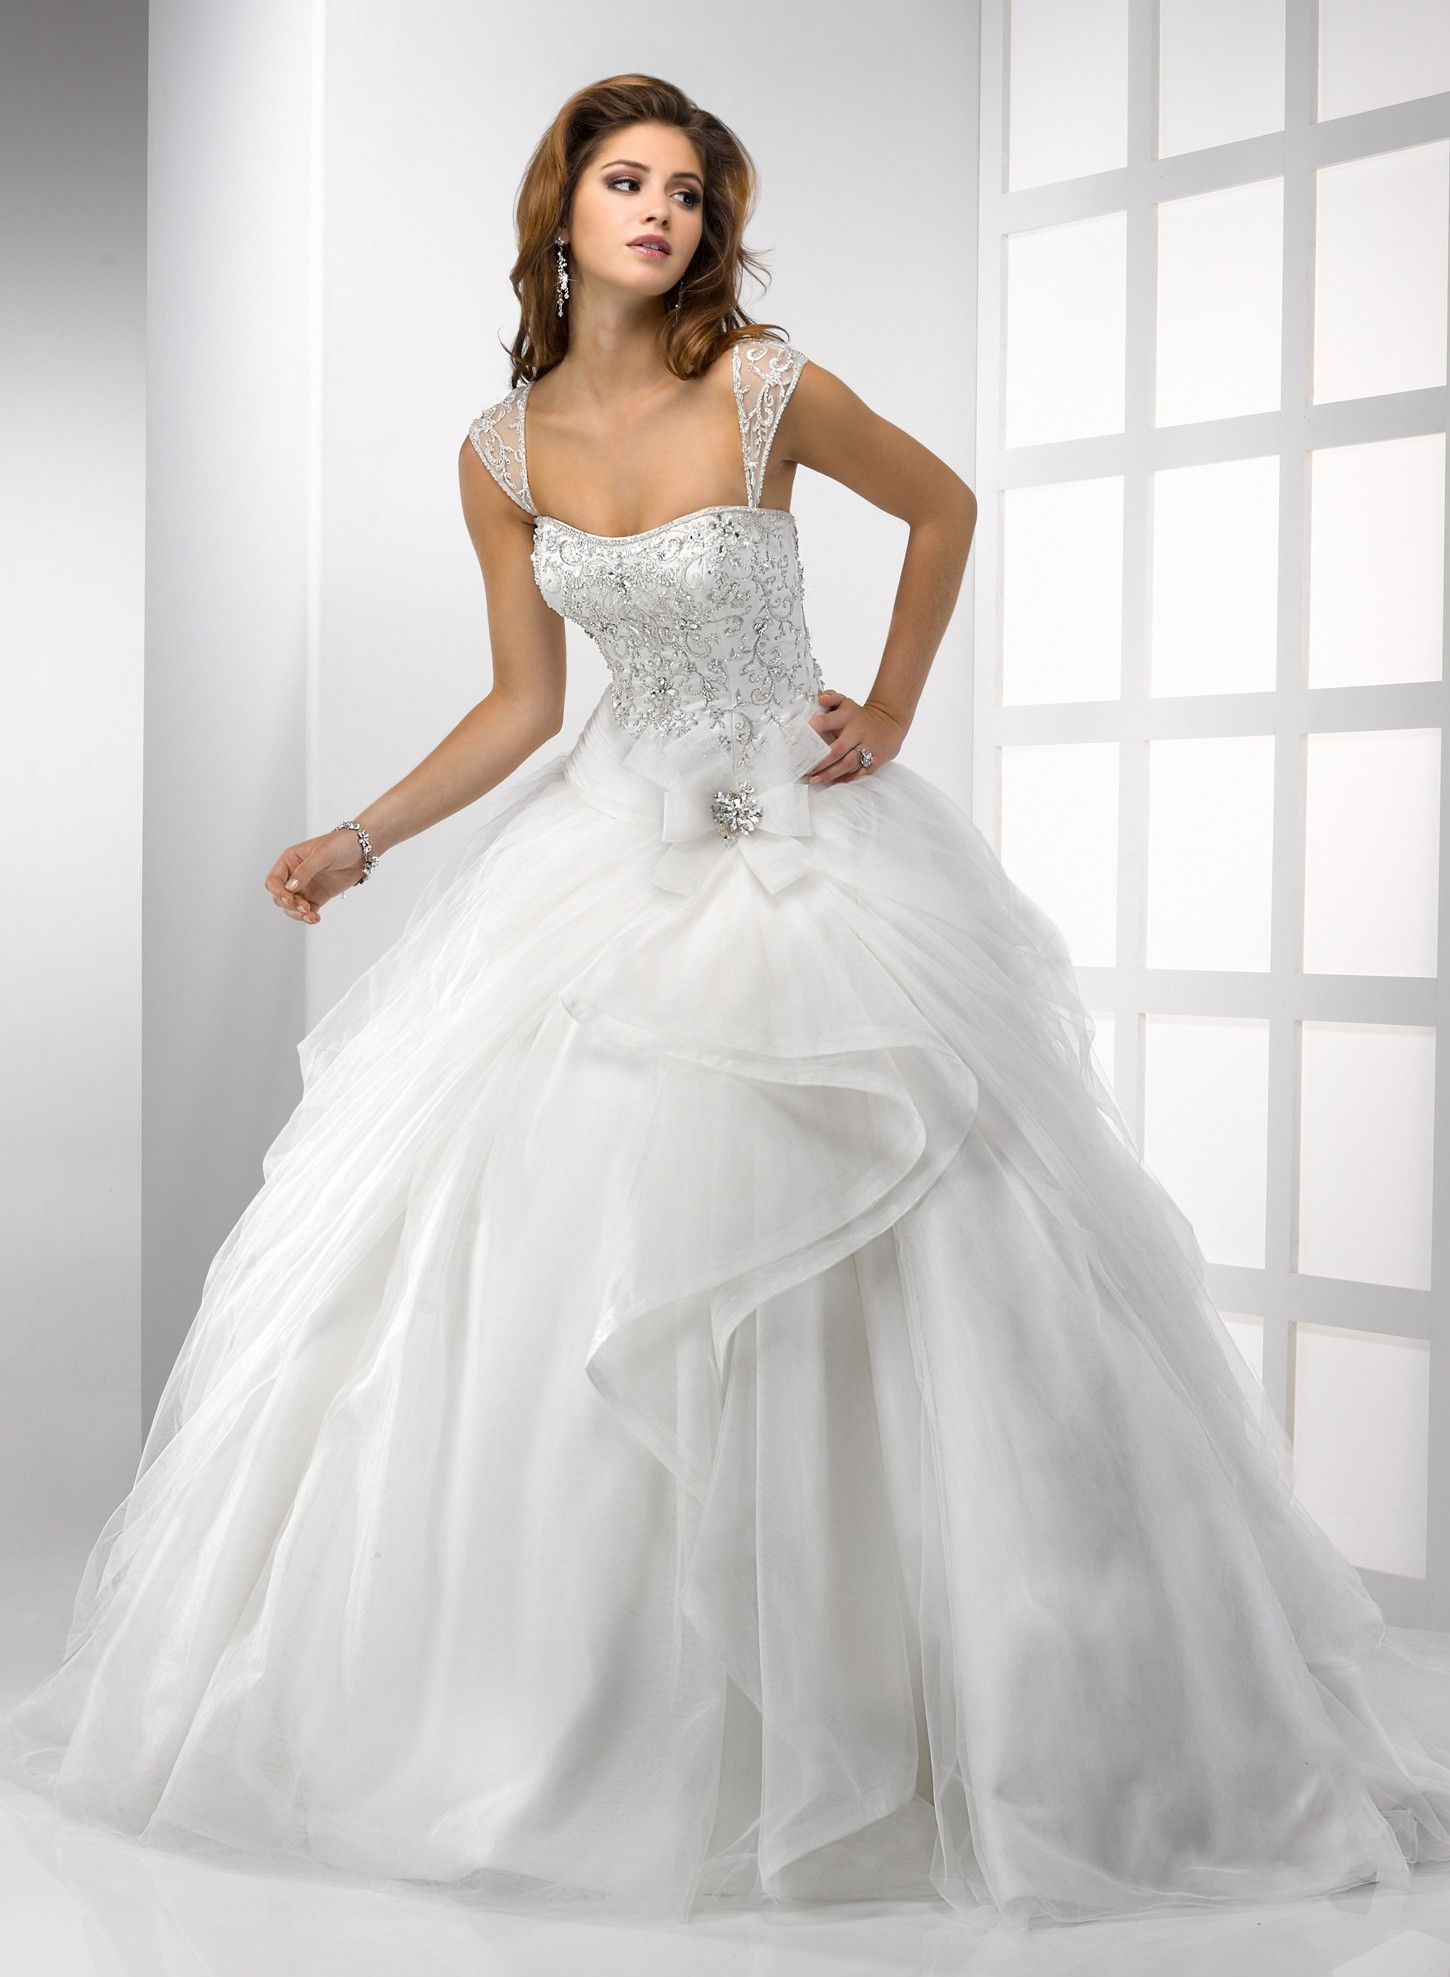 ball gown wedding dress designed with embroidered cap sleeves ...